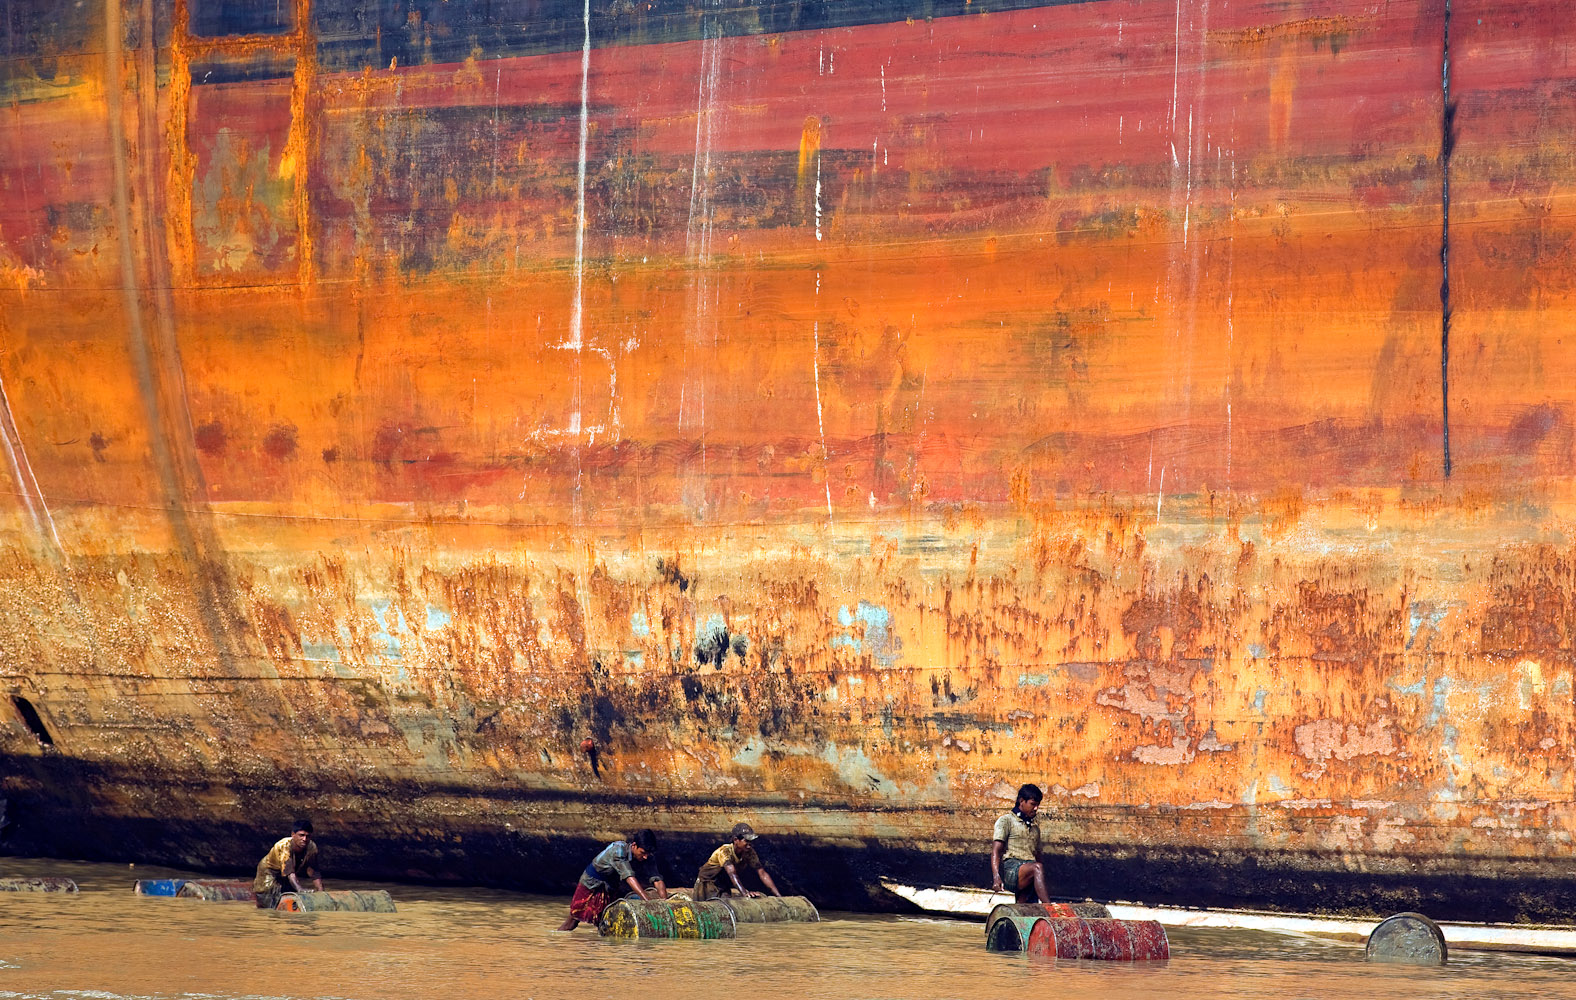 Bangladesh_Ship_Breaking_MG_7075a_PRINT